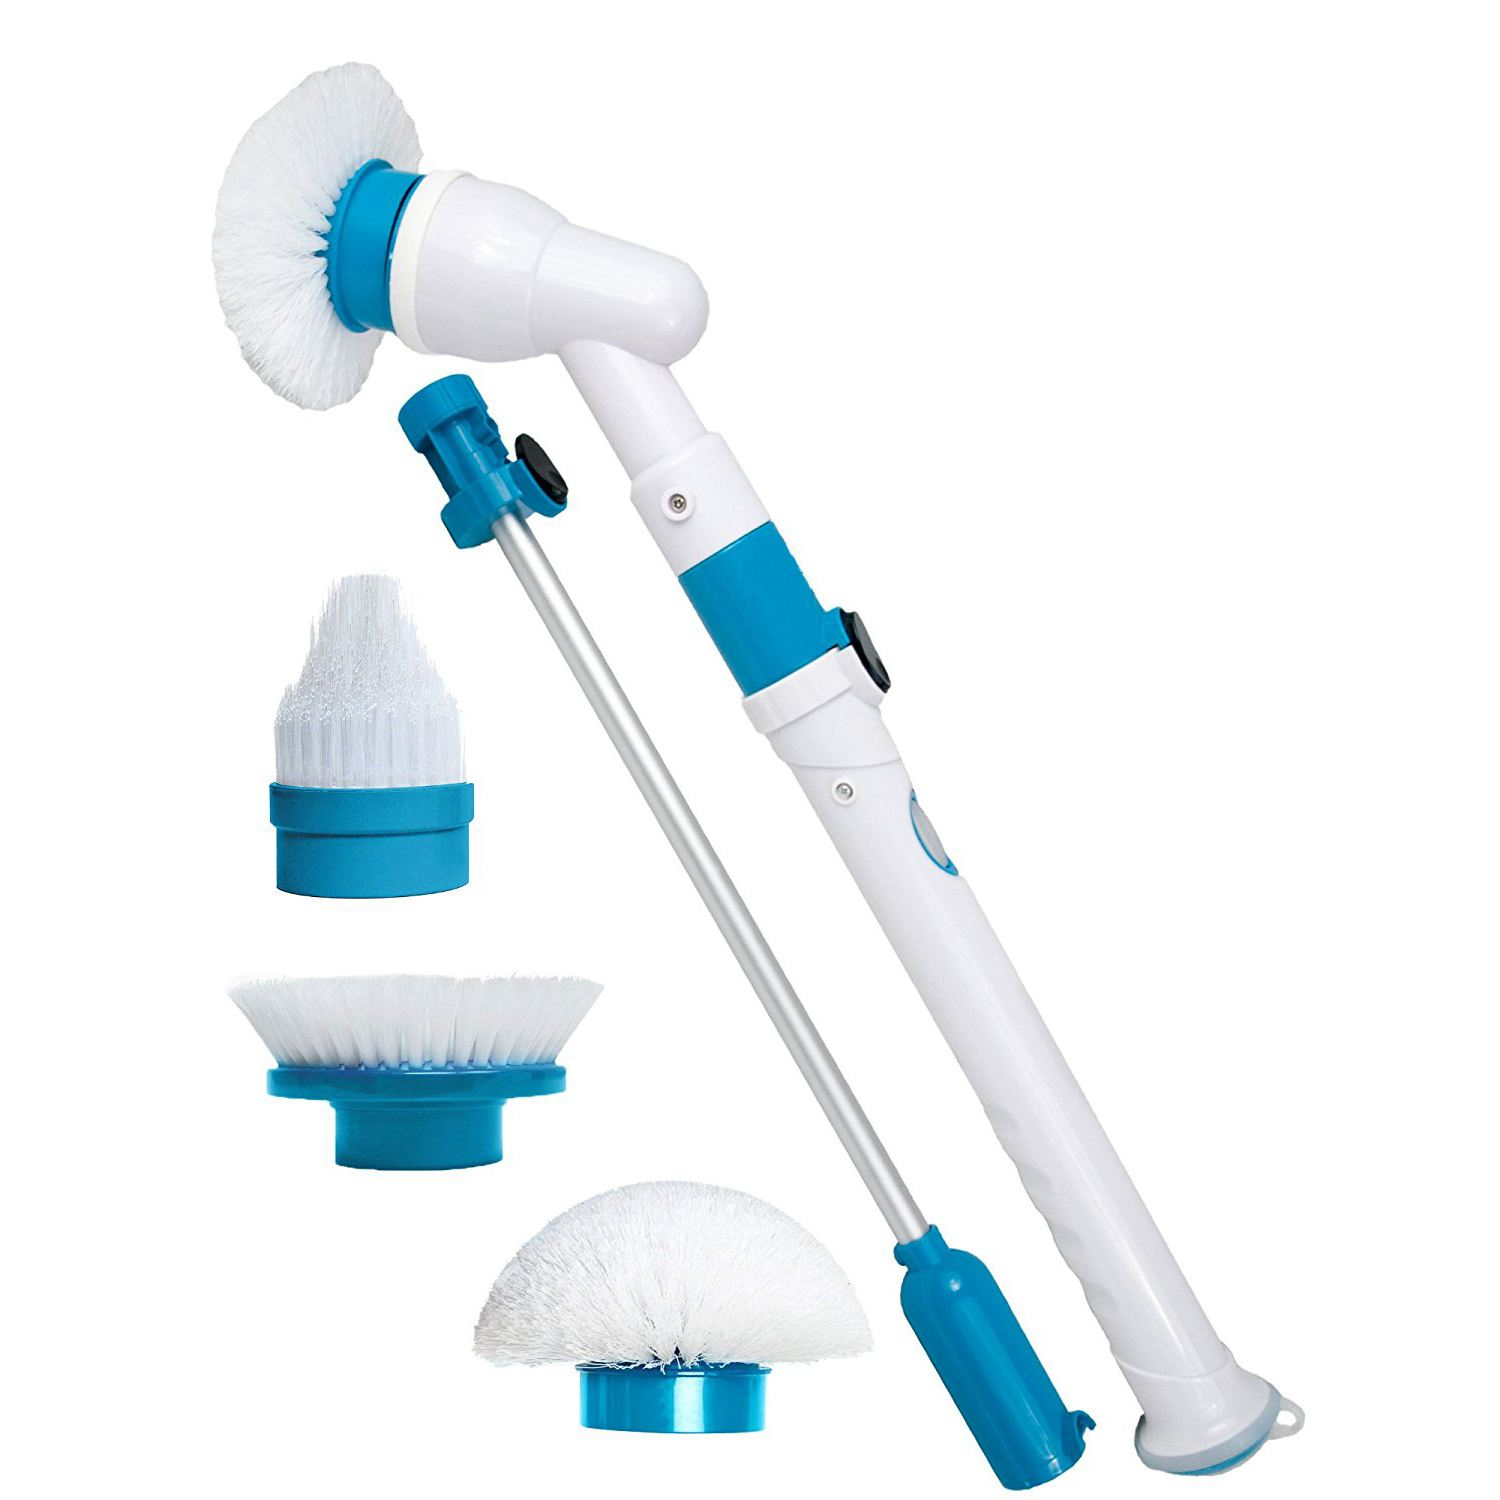 HOT SALE Spin Scrubber Electric Powerful Cleaning Brush with Extension Handle Tub and Tile Scrubber for Bathroom Floor Tiles W